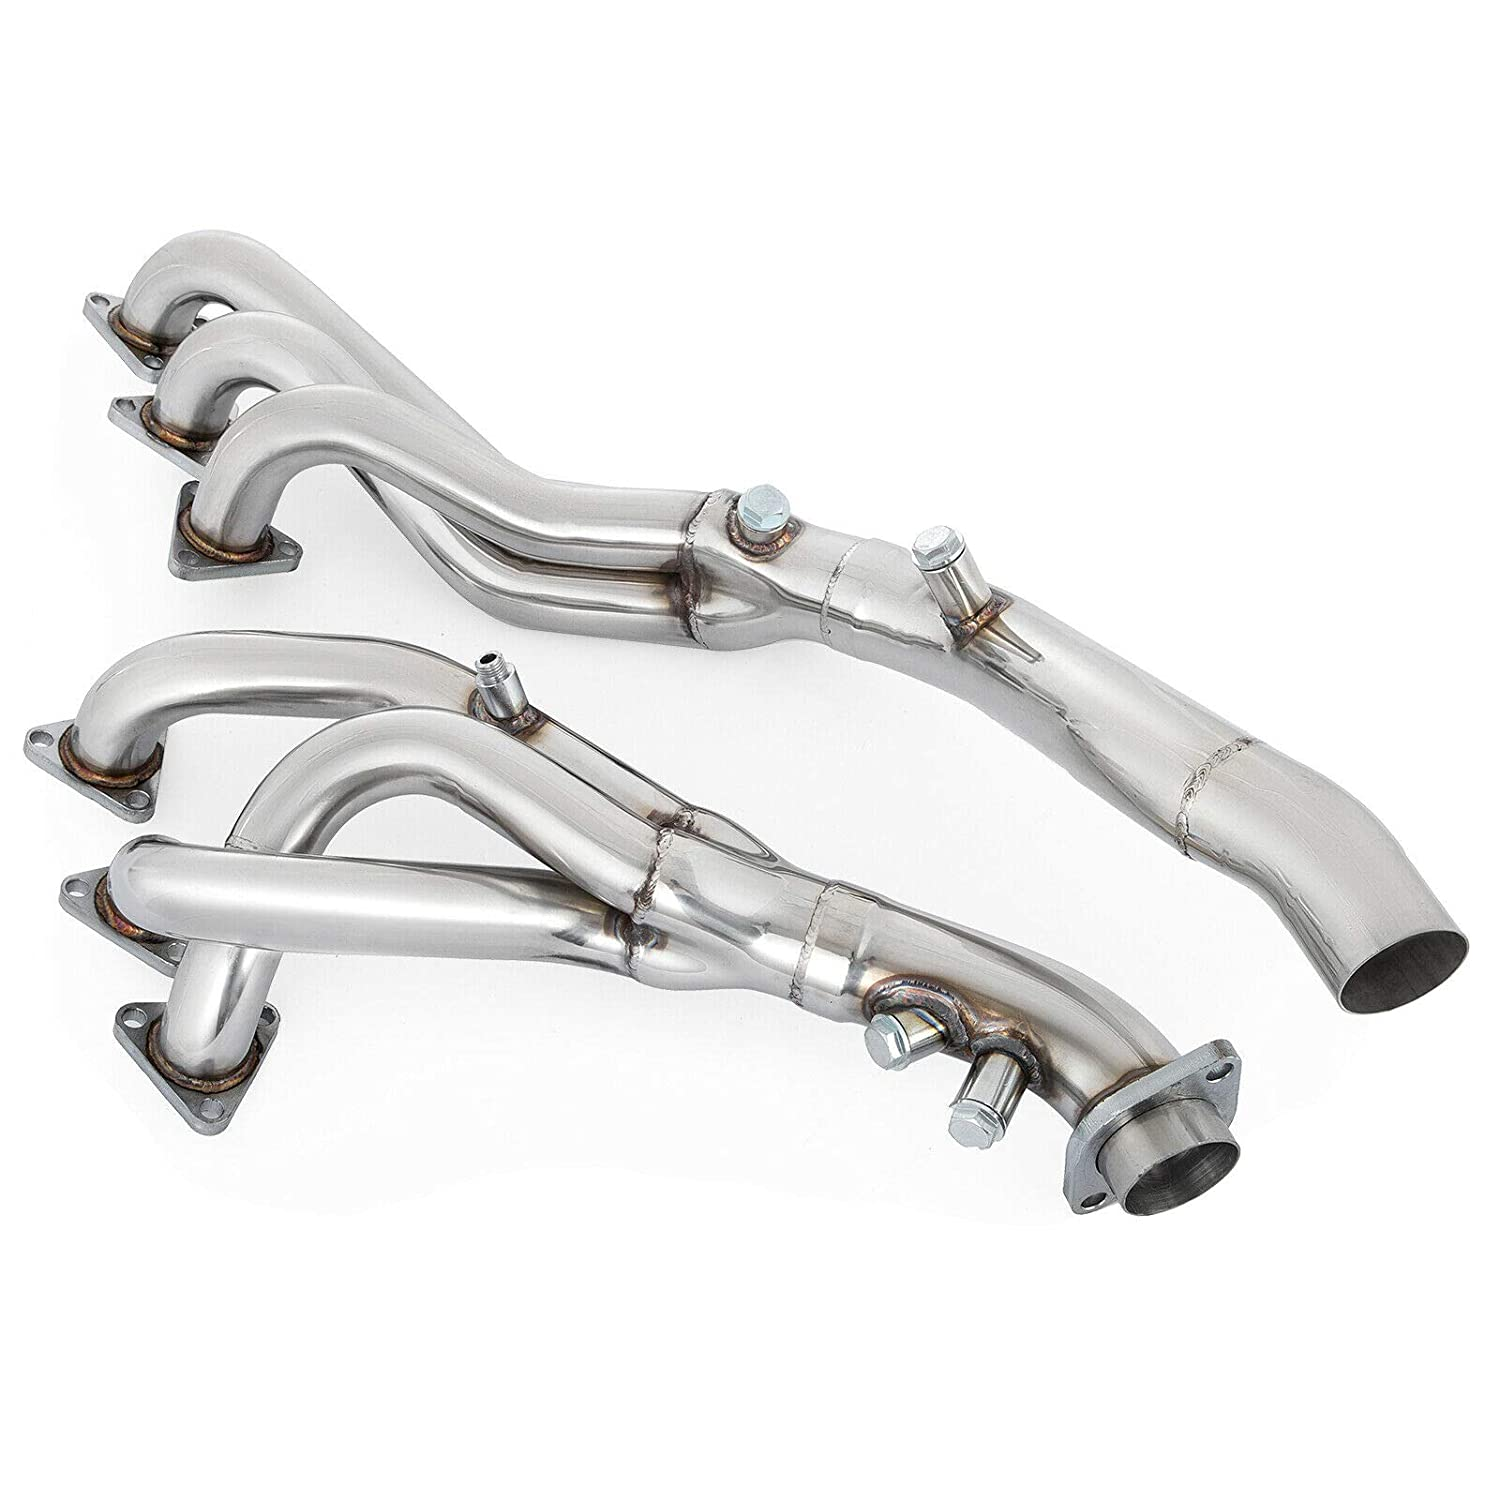 Mophornperformance Exhaust Manifold Headers Fits Bmw E46 E39 Z4 01 06 2 5l 2 8l 3 0l L6